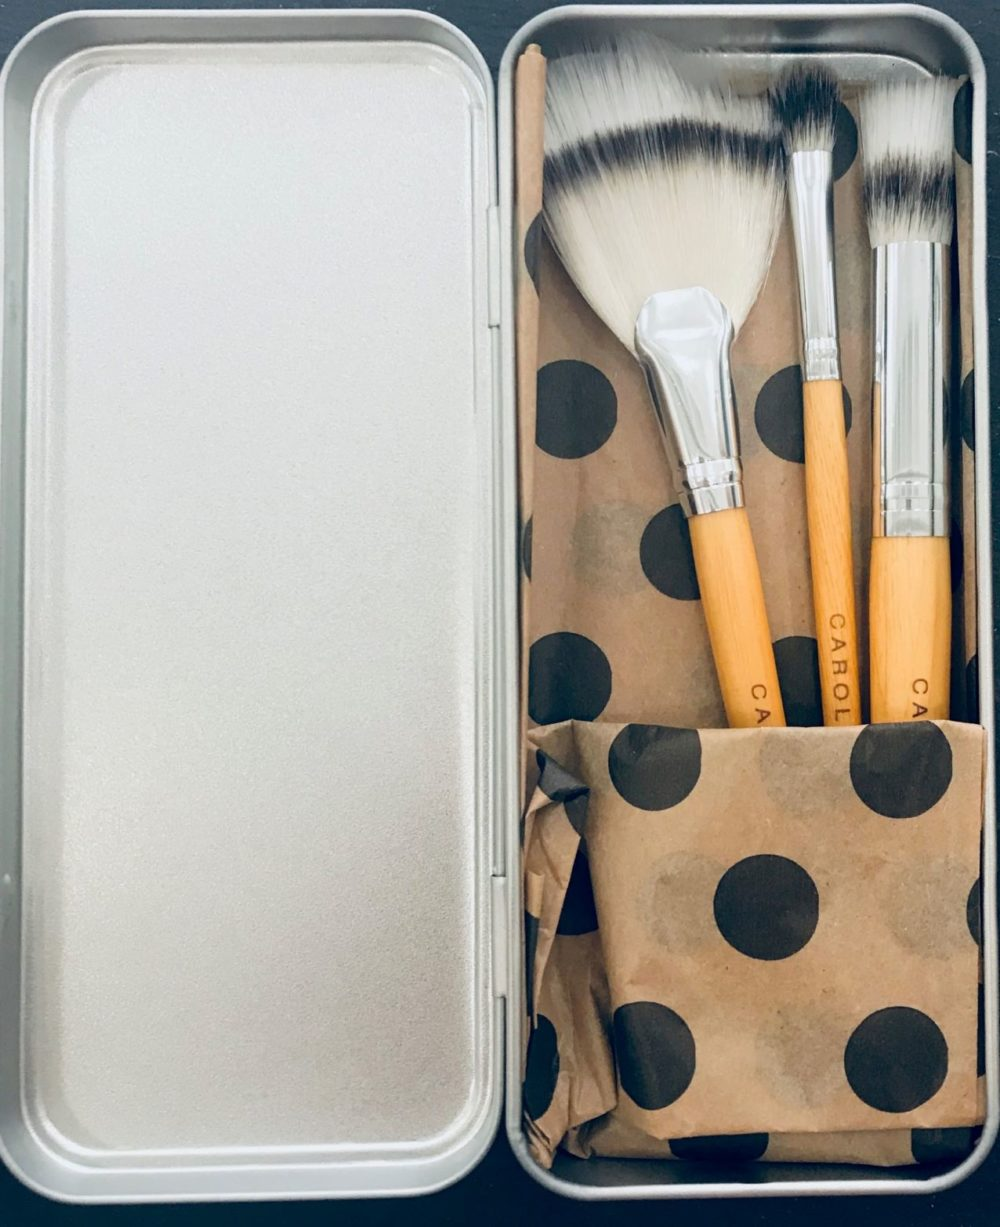 It's All About The Face make-up brushes